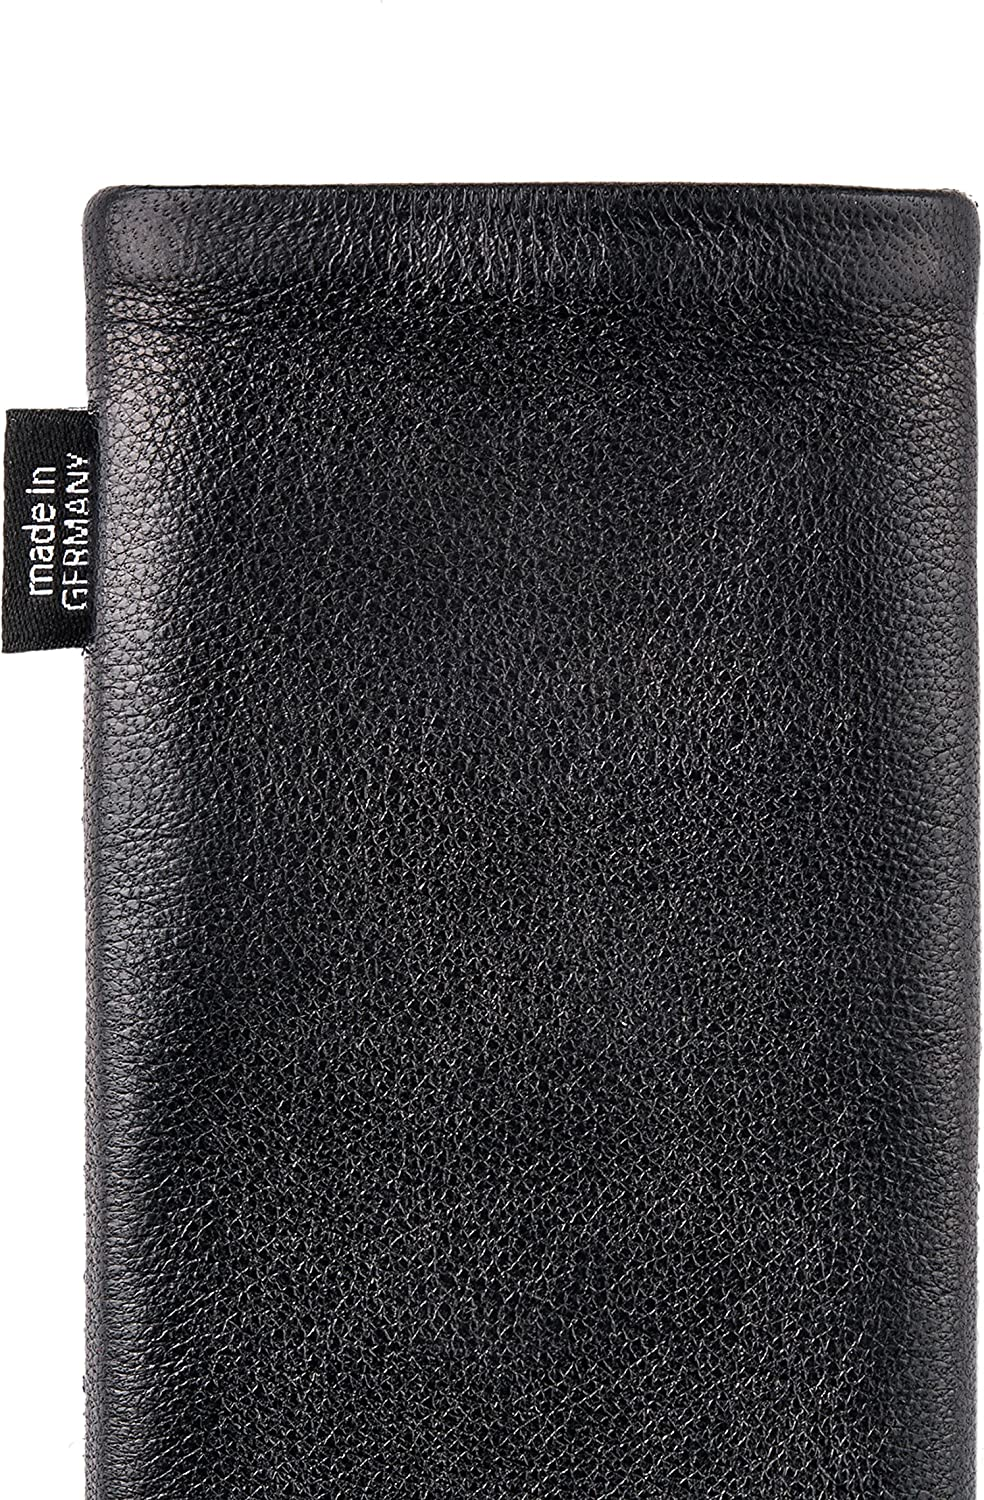 fitBAG Beat Red custom tailored sleeve for Samsung Galaxy Note10+ Made in Germany Fine nappa leather pouch case cover with MicroFibre lining for display cleaning Note 10 Plus